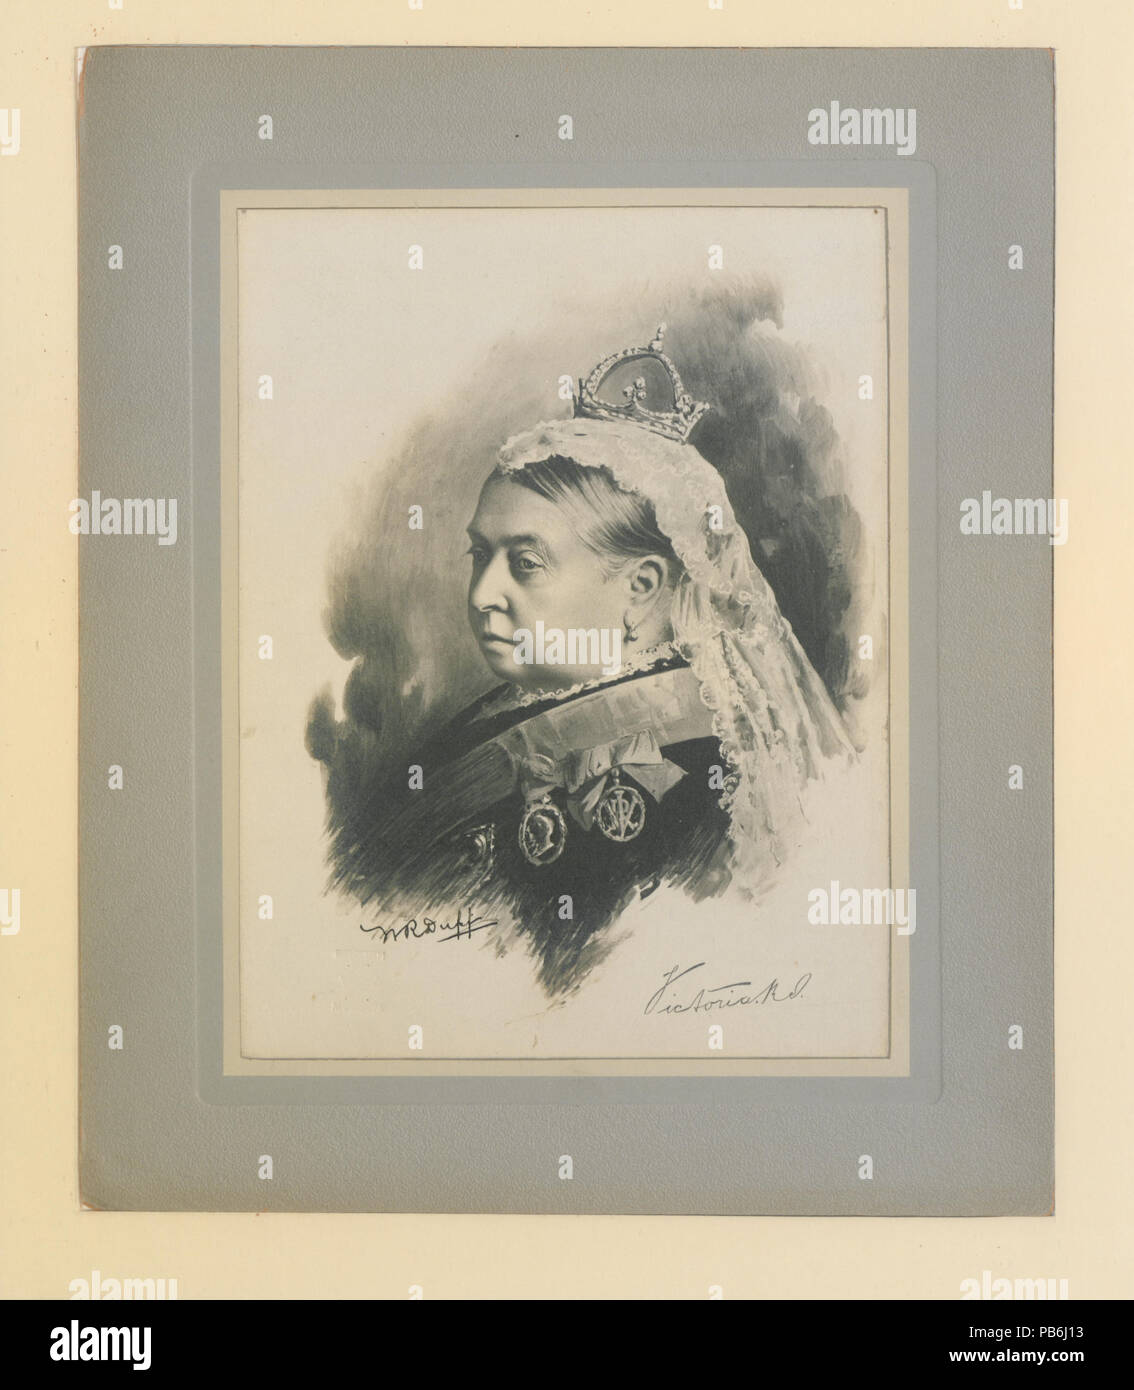 755 Her Late Majesty Queen Victoria photo-lithograph (HS85-10-11965)